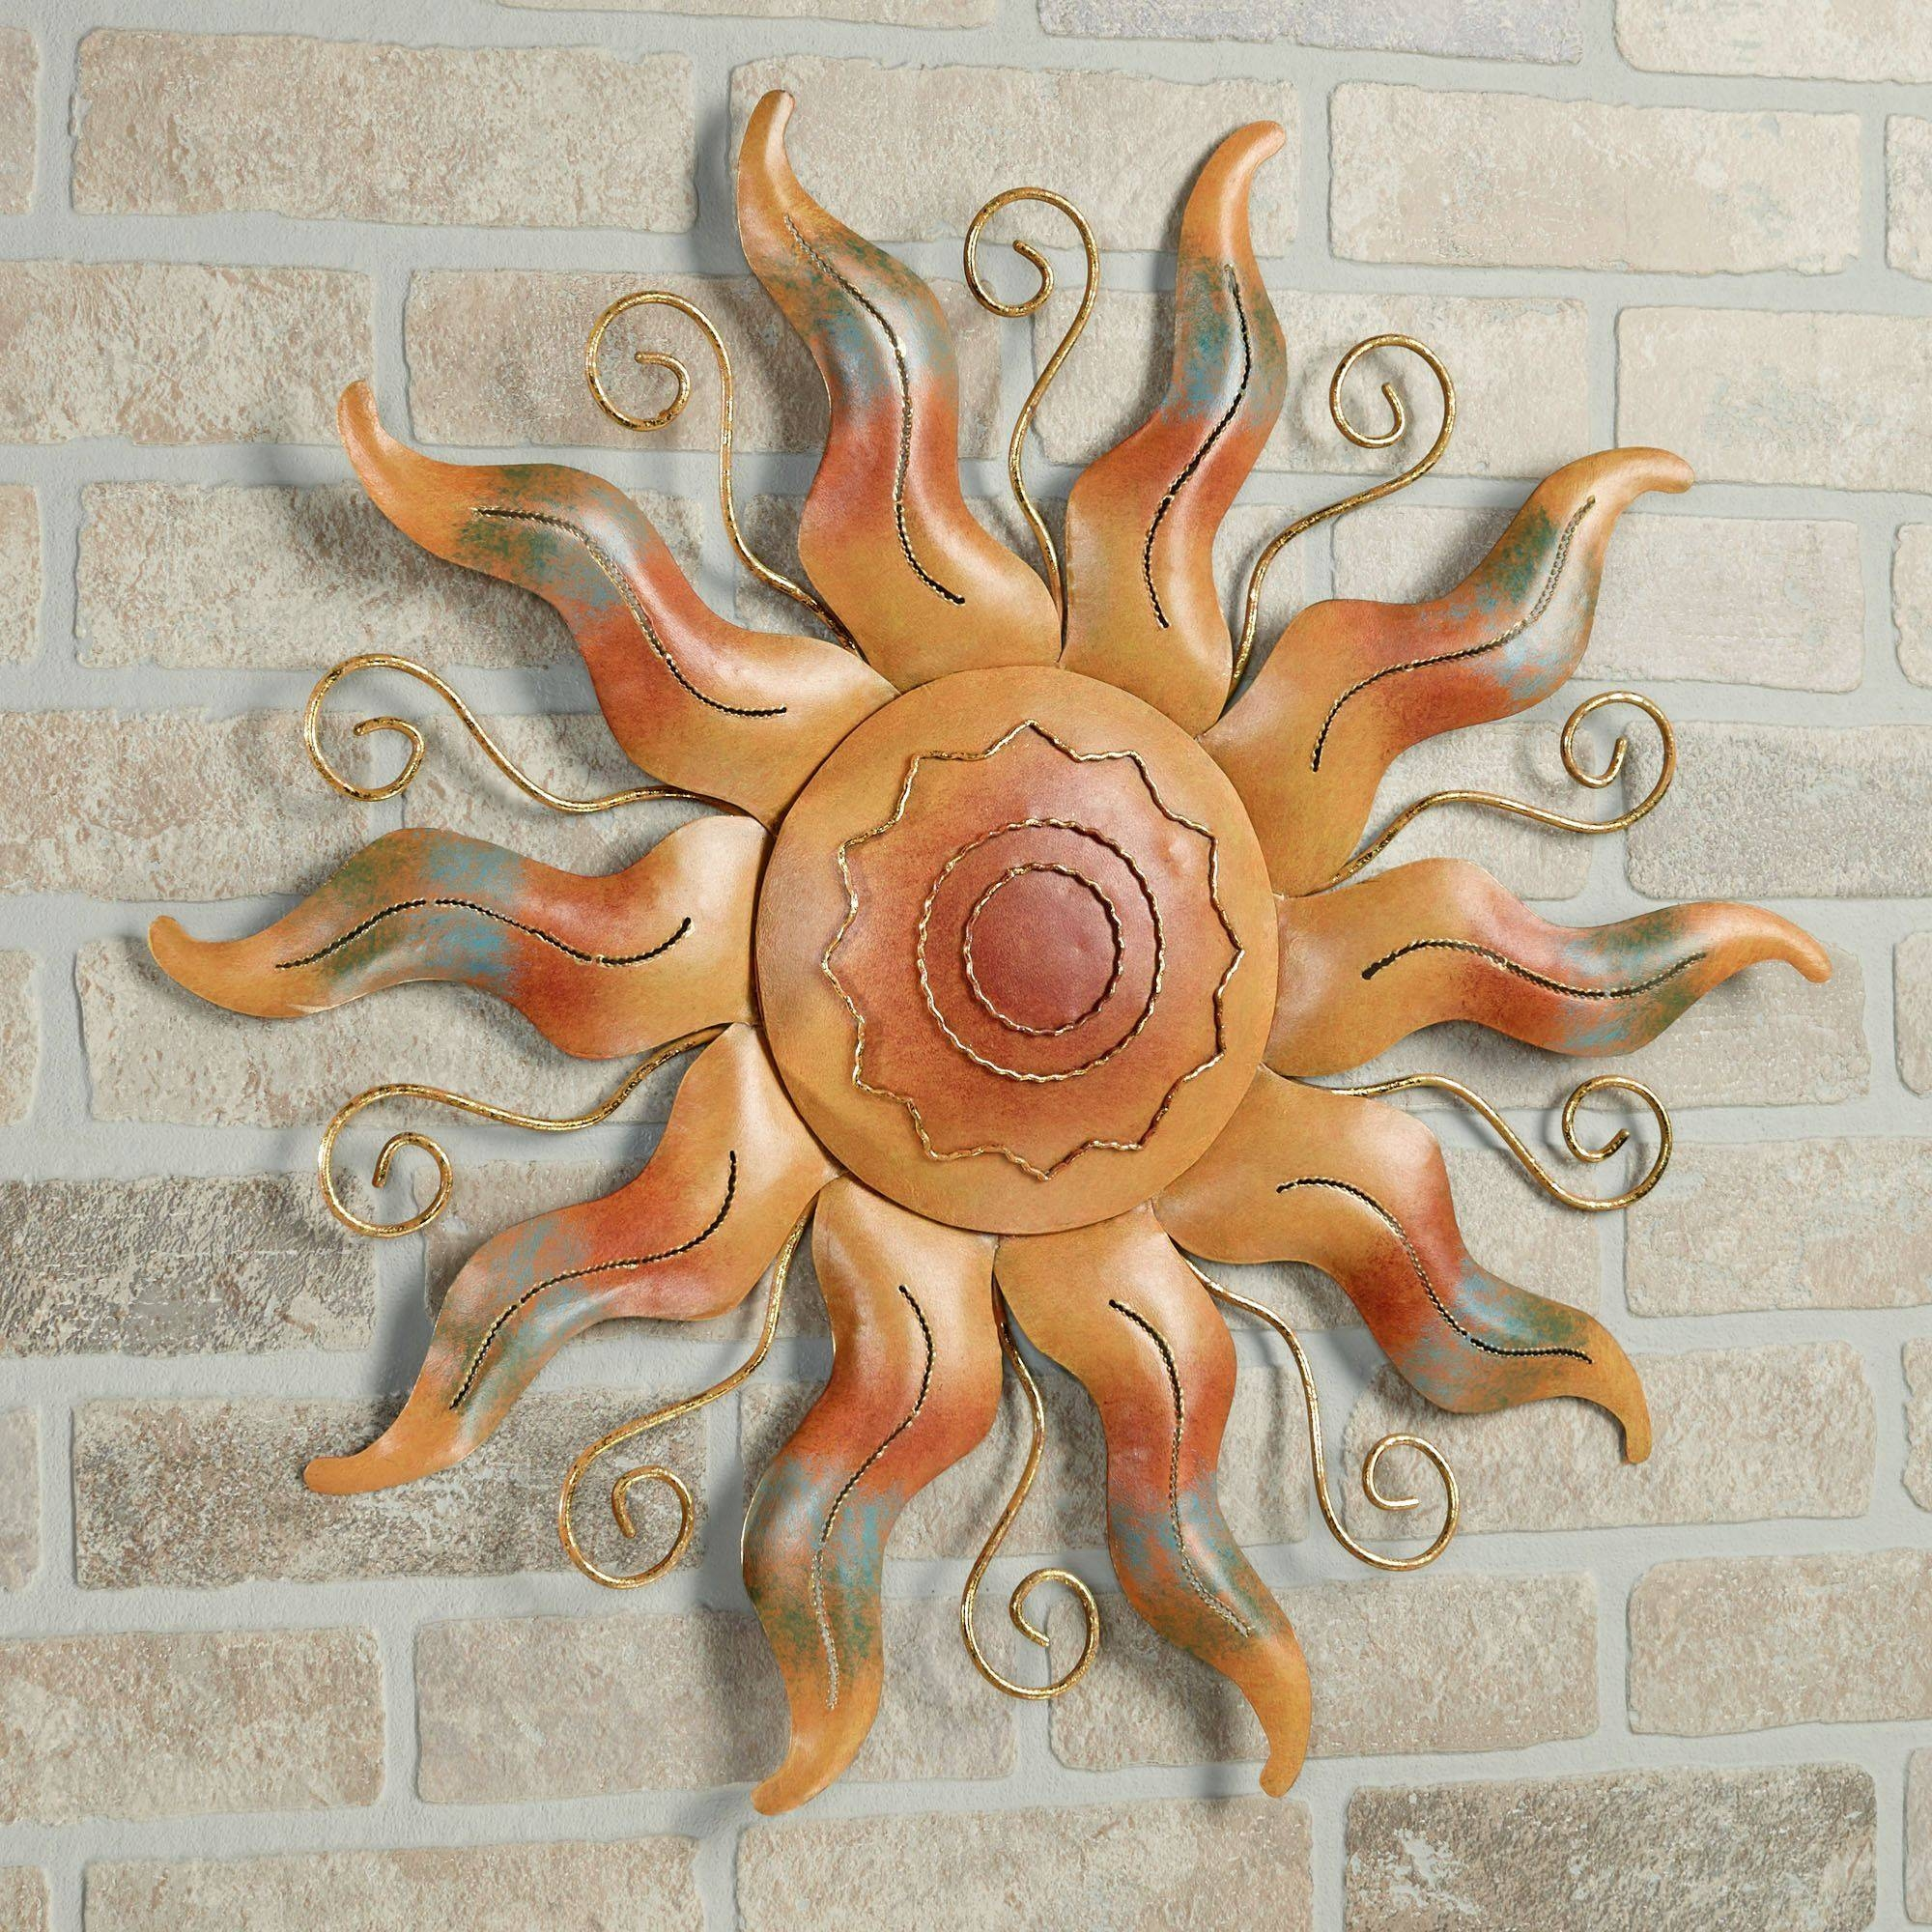 Fiesta Sun Indoor Outdoor Metal Wall Art Throughout Latest Southwest Metal Wall Art (View 14 of 25)